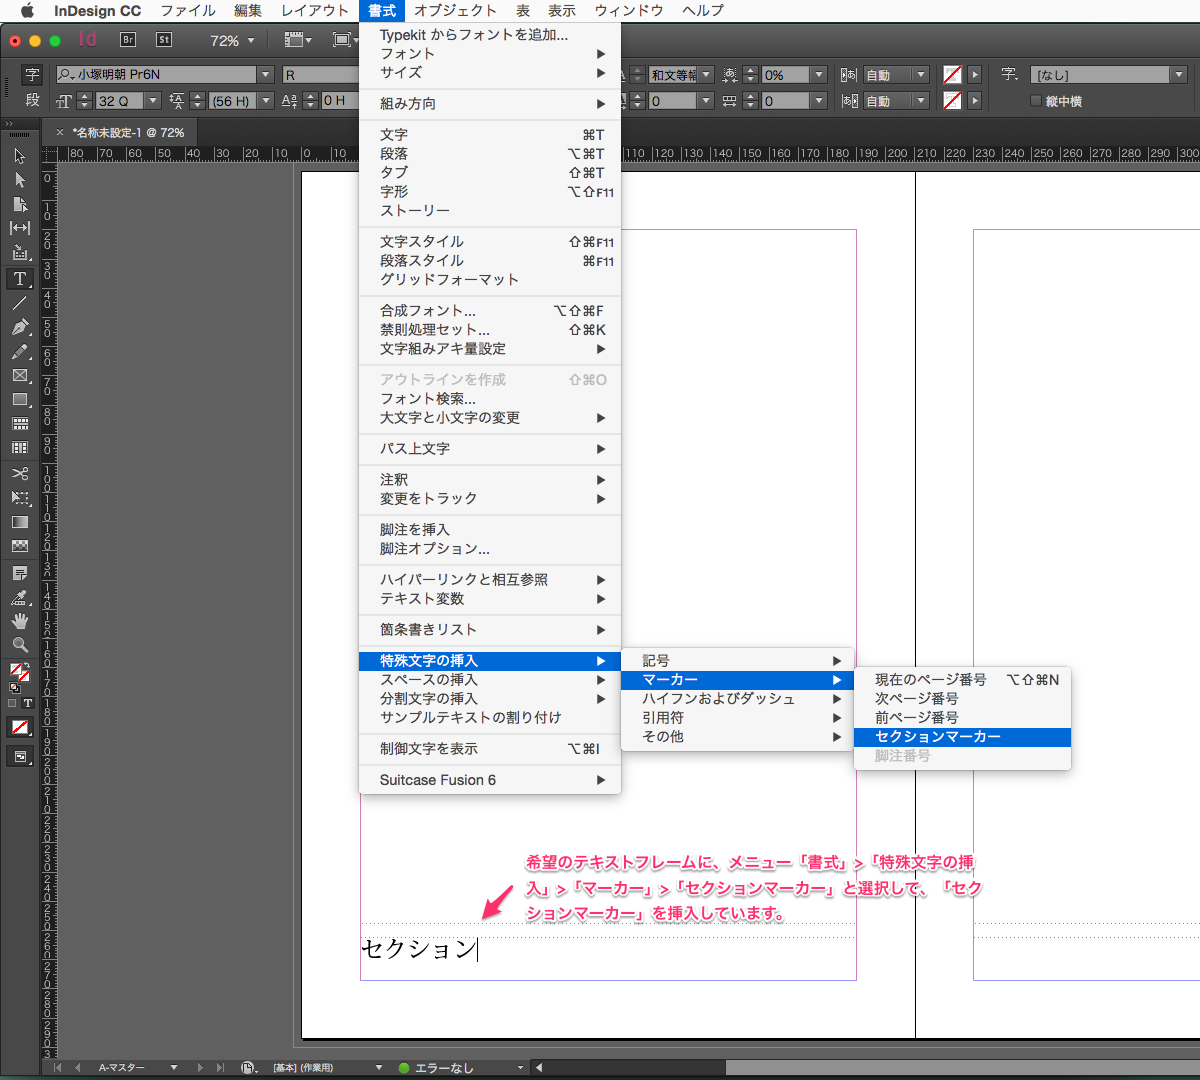 http://www.too.com/support/toocare/faq/indesign_section_marker_1.png